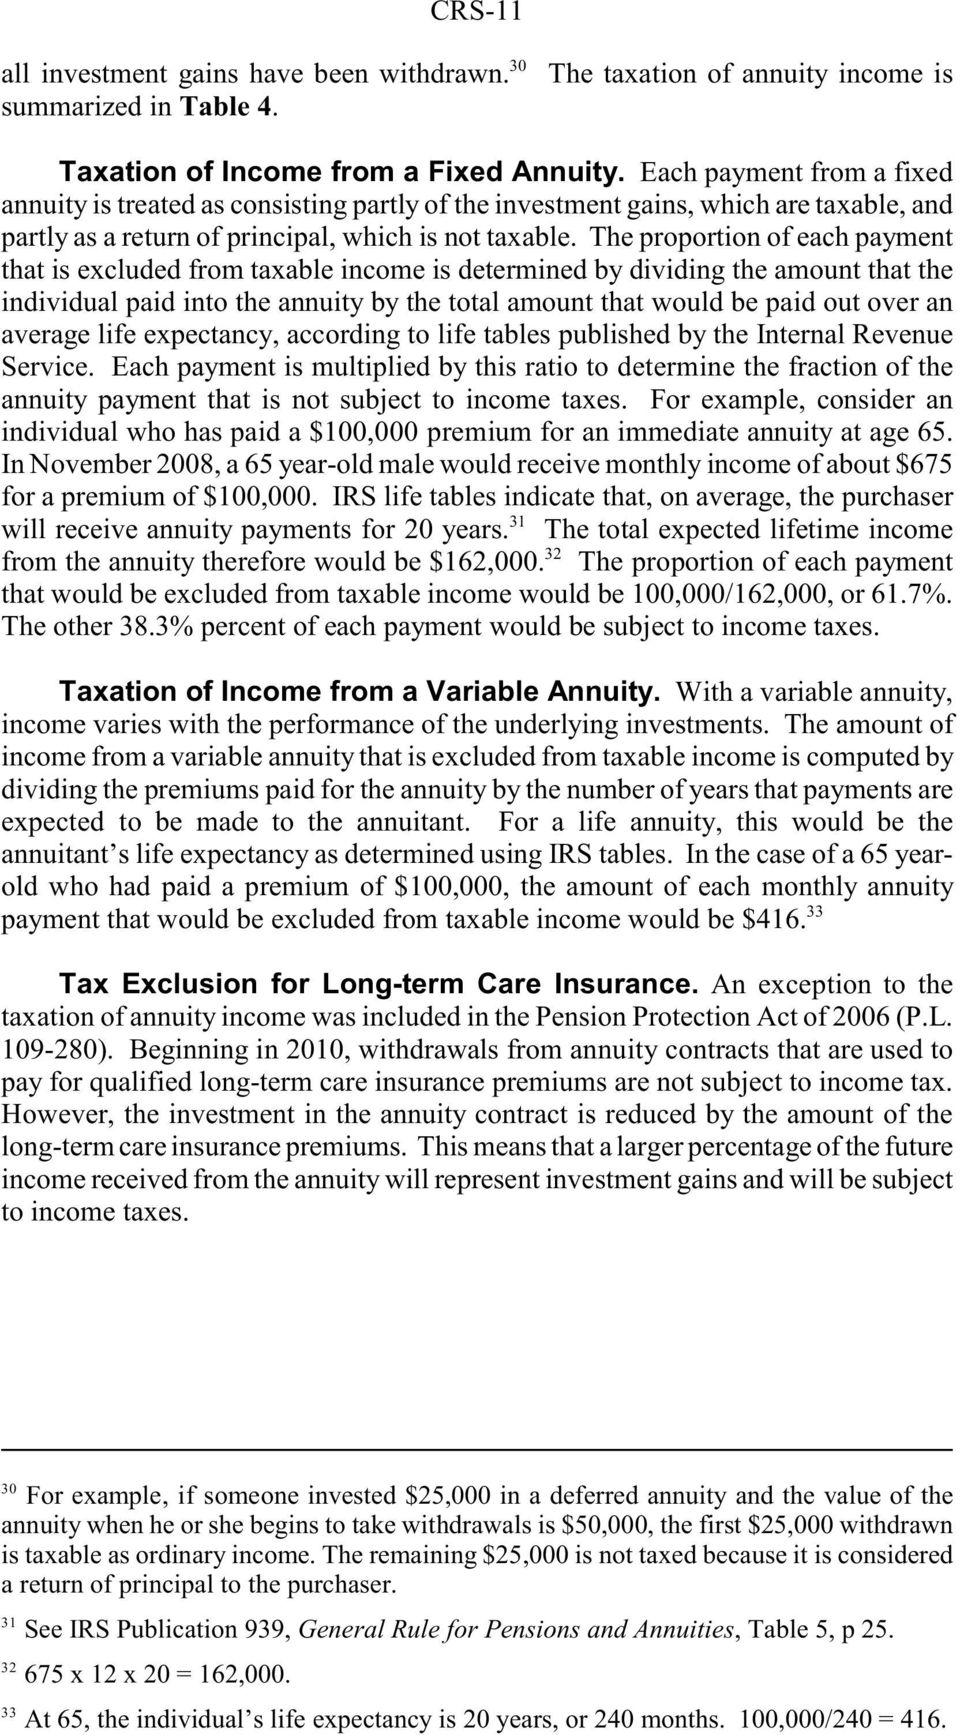 The proportion of each payment that is excluded from taxable income is determined by dividing the amount that the individual paid into the annuity by the total amount that would be paid out over an